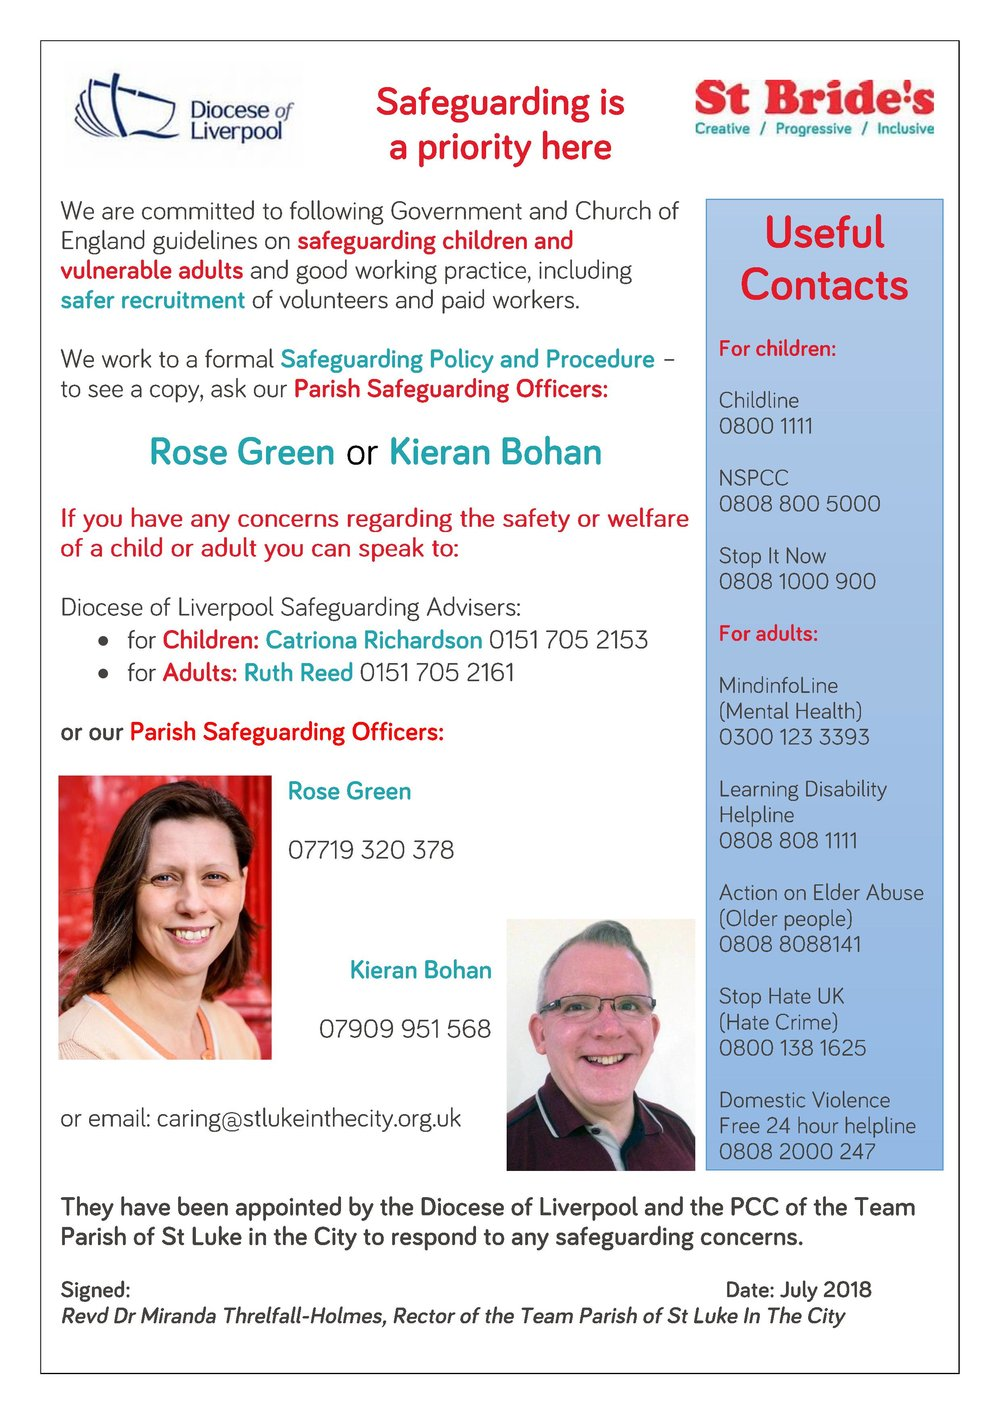 St Bride s safeguarding poster July 2018.jpg